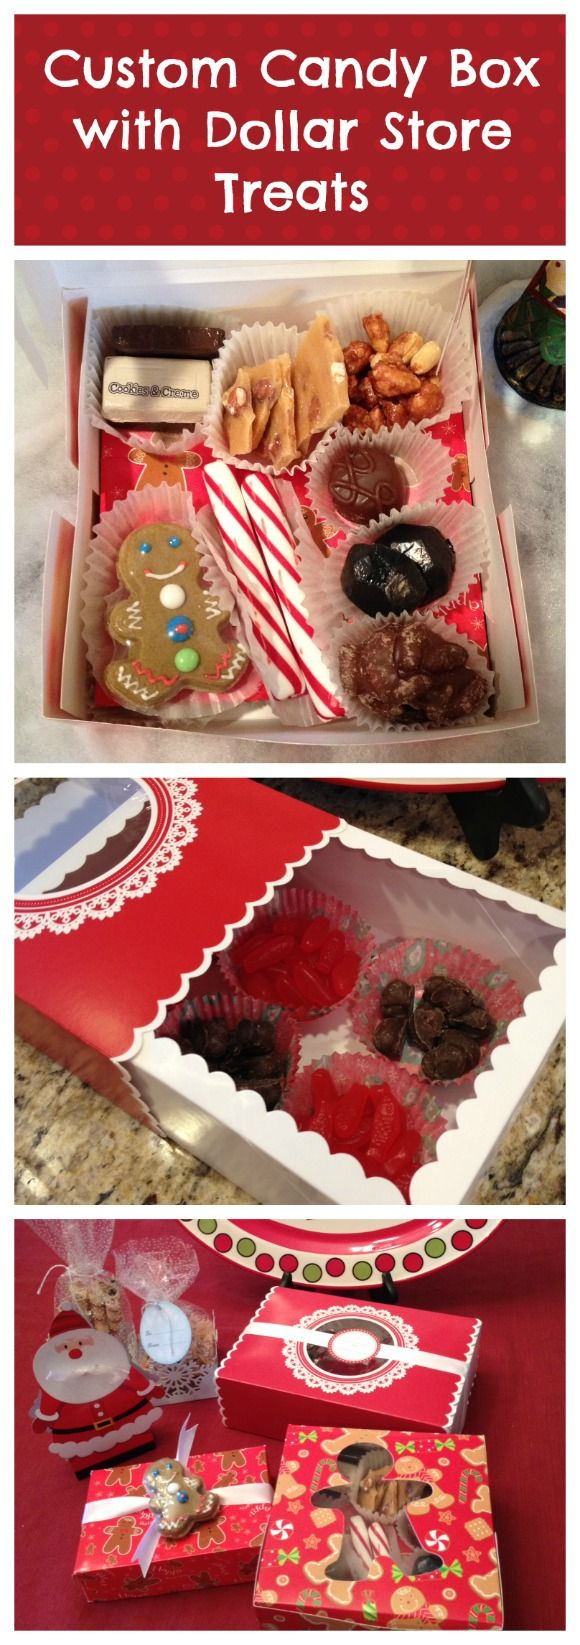 Custom candy gift box with treats from the dollar store - why didn't I think of that?